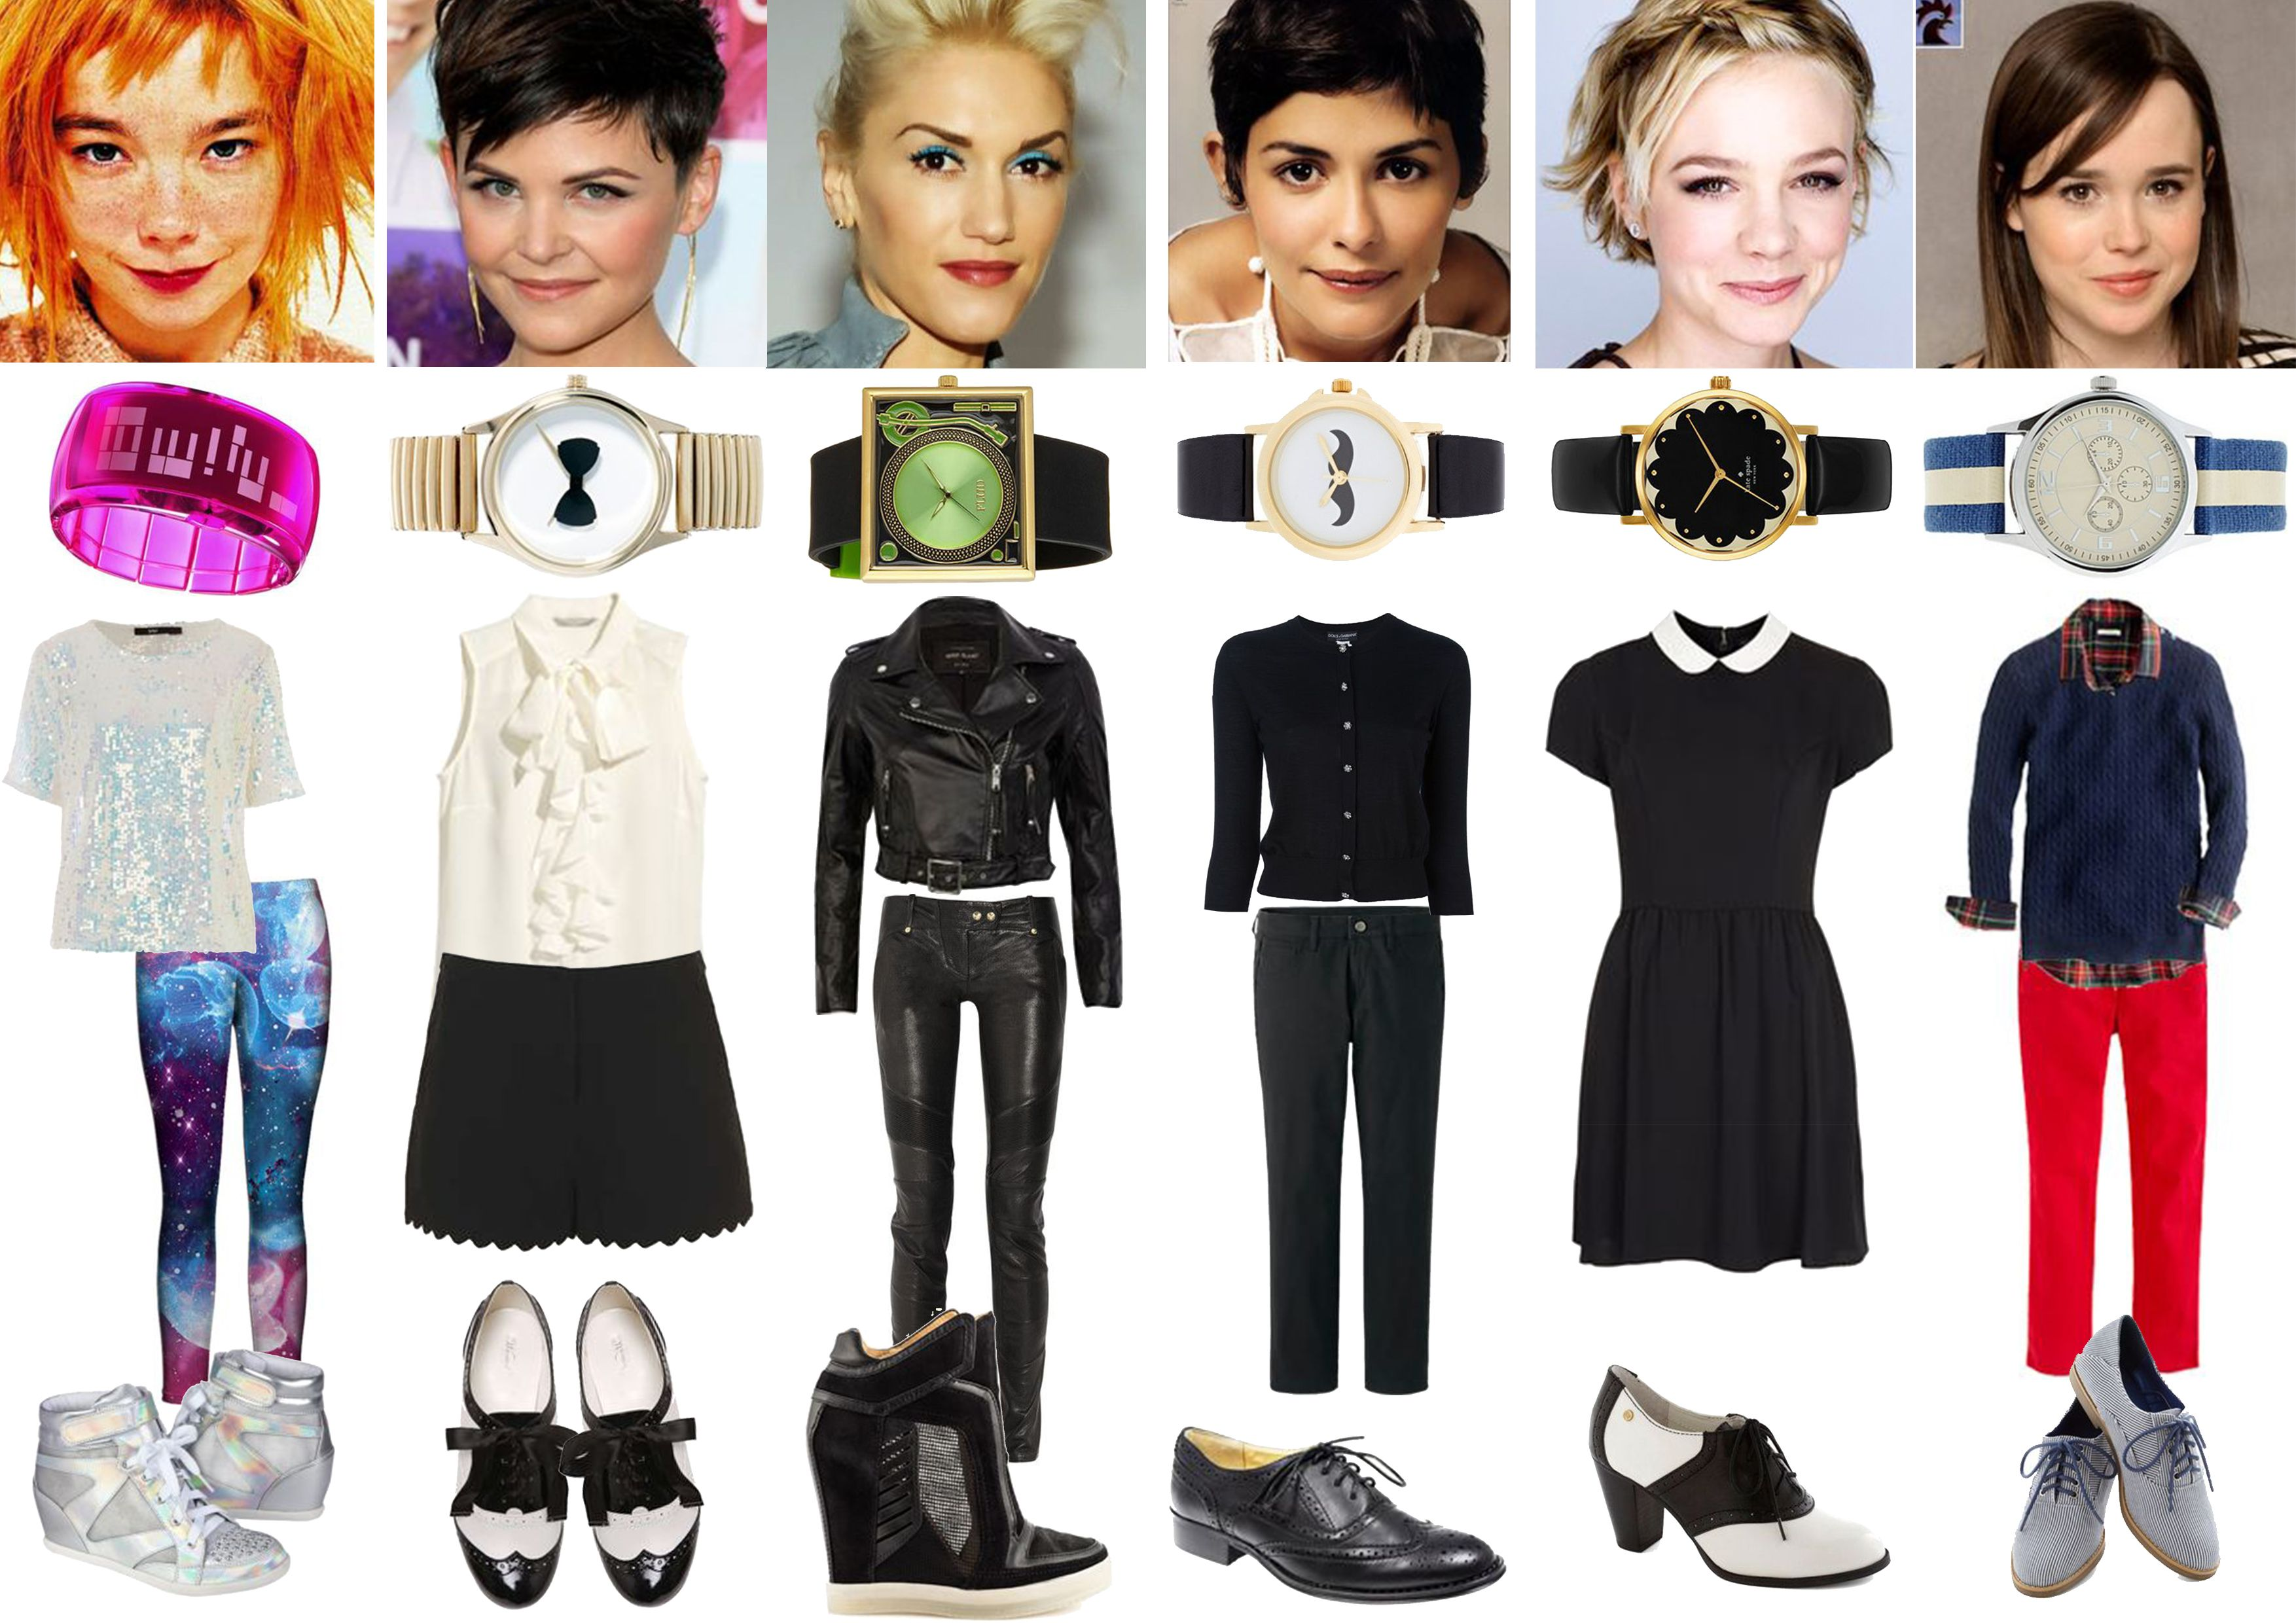 Image & Style Identity Cheat Sheet 007 Gamines - Ethereal Gamine - Bjork, Romantic Gamine - Ginnifer Goodwin, Dramatic gamine - Gwen Stefani, my guess for Classic Gamine - Audrey Tautou, my guess for Gamine Ingenue - Carey Mulligan, Natural Gamine - Ellen Page.